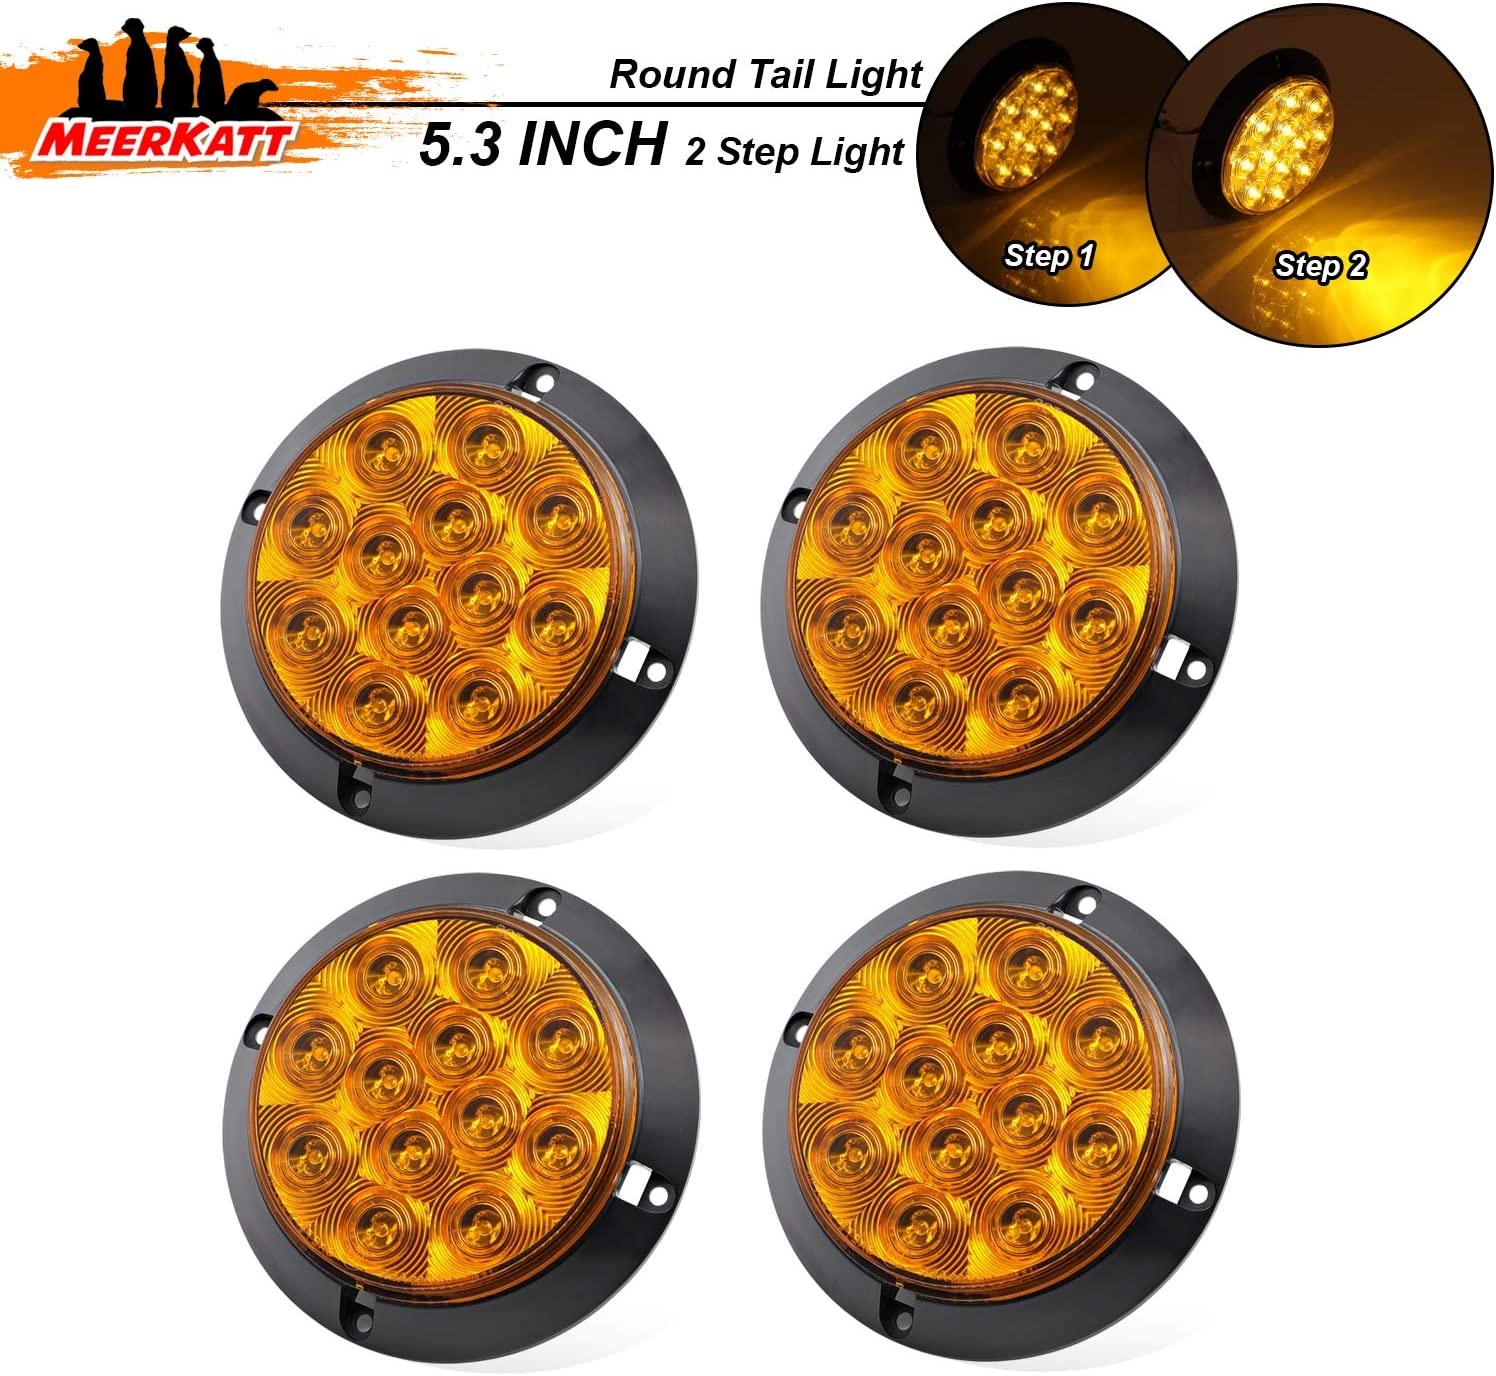 4 Inch Amber LED Sealed Surface Mount Round Turn Signal Tail Utility Lights with Two Step Bright Waterproof Trailer Bus Truck Lorry Forklift Jeep Camper 12V DC Exterior Lamp GK12 Pack of 4 Meerkatt